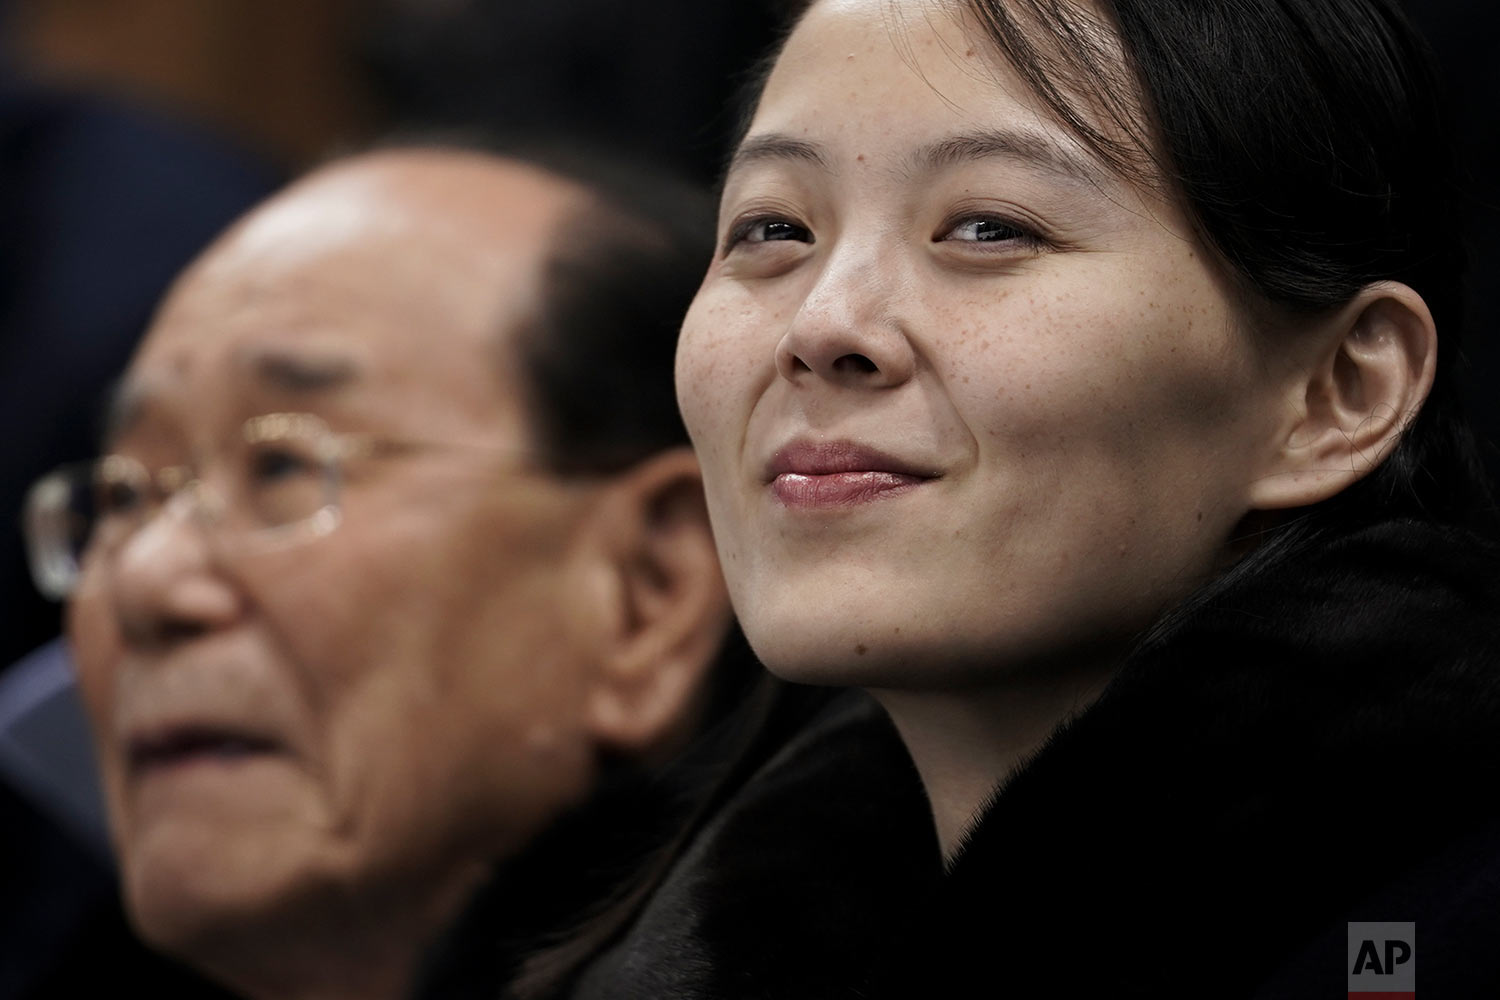 Kim Yo Jong, the sister of North Korean leader Kim Jong Un, waits with North Korea's nominal head of state, Kim Yong Nam, for the start of a women's hockey game between Switzerland and the combined Koreas at the 2018 Winter Olympics in Gangneung, South Korea, on Feb. 10, 2018. Kim first emerged on the world stage at the Winter Games as emissary for good will from the North. (AP Photo/Felipe Dana)